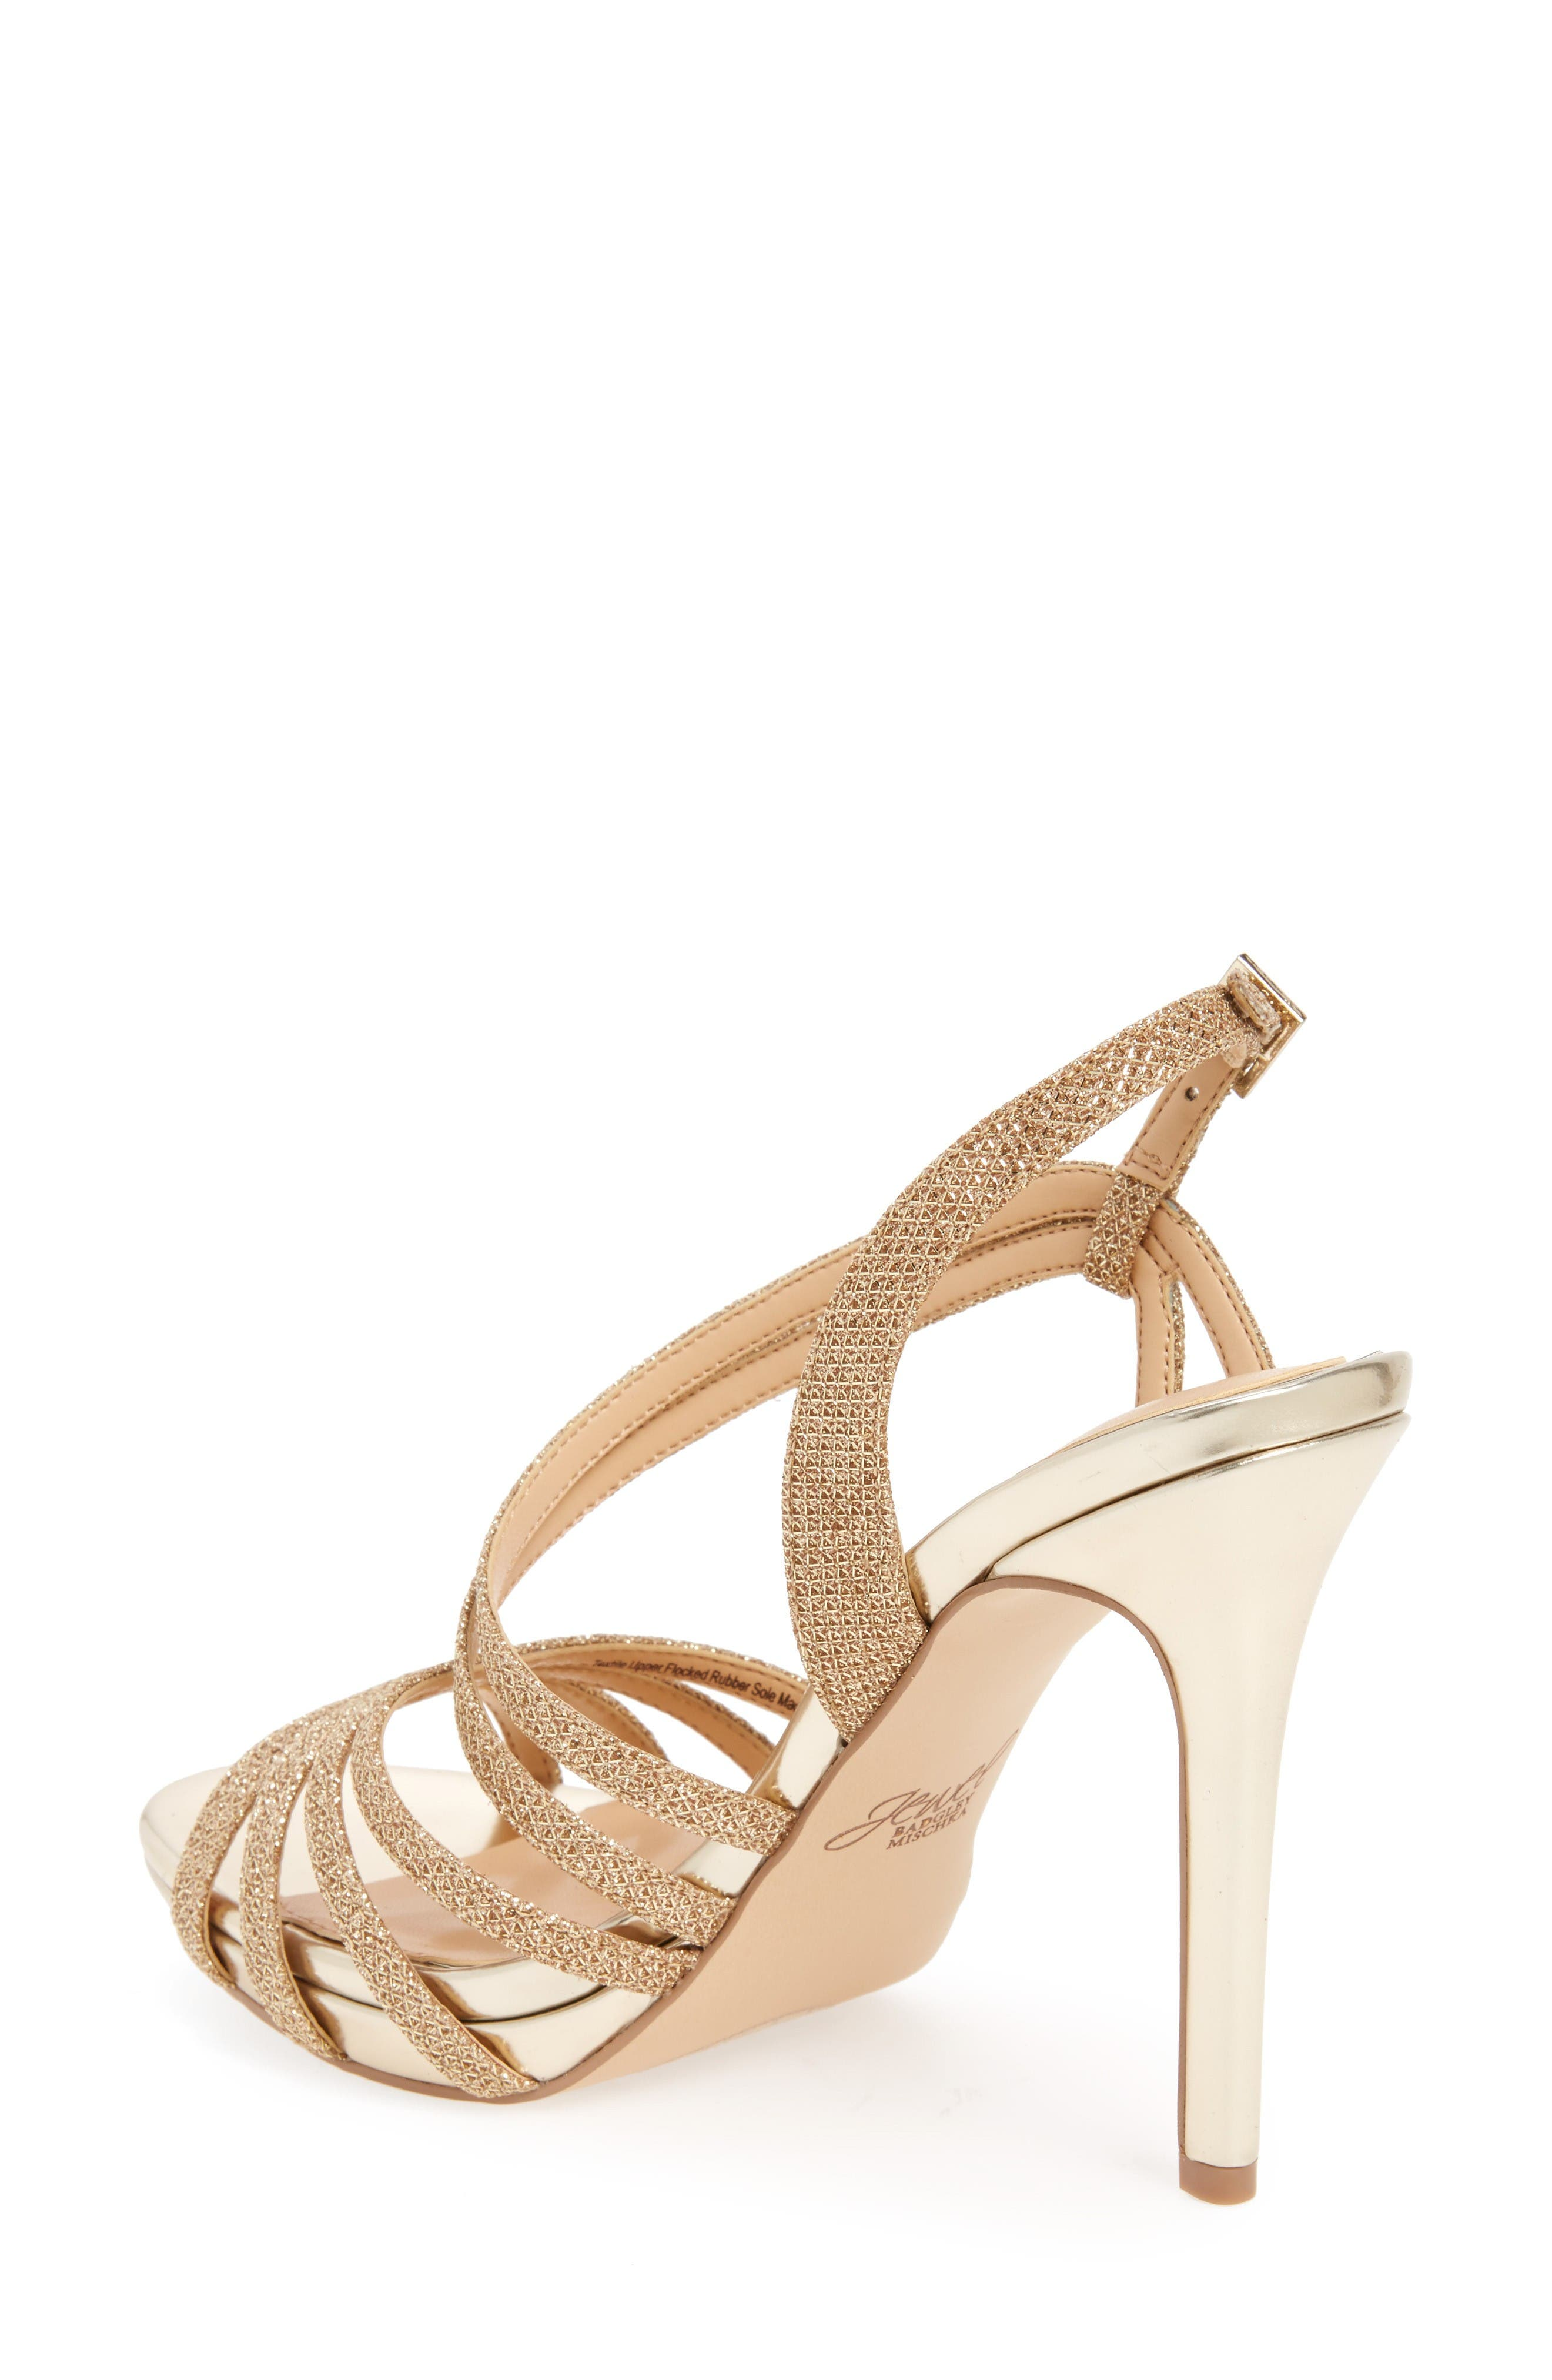 Humble Strappy Sandal,                             Alternate thumbnail 2, color,                             Gold Glitter Fabric